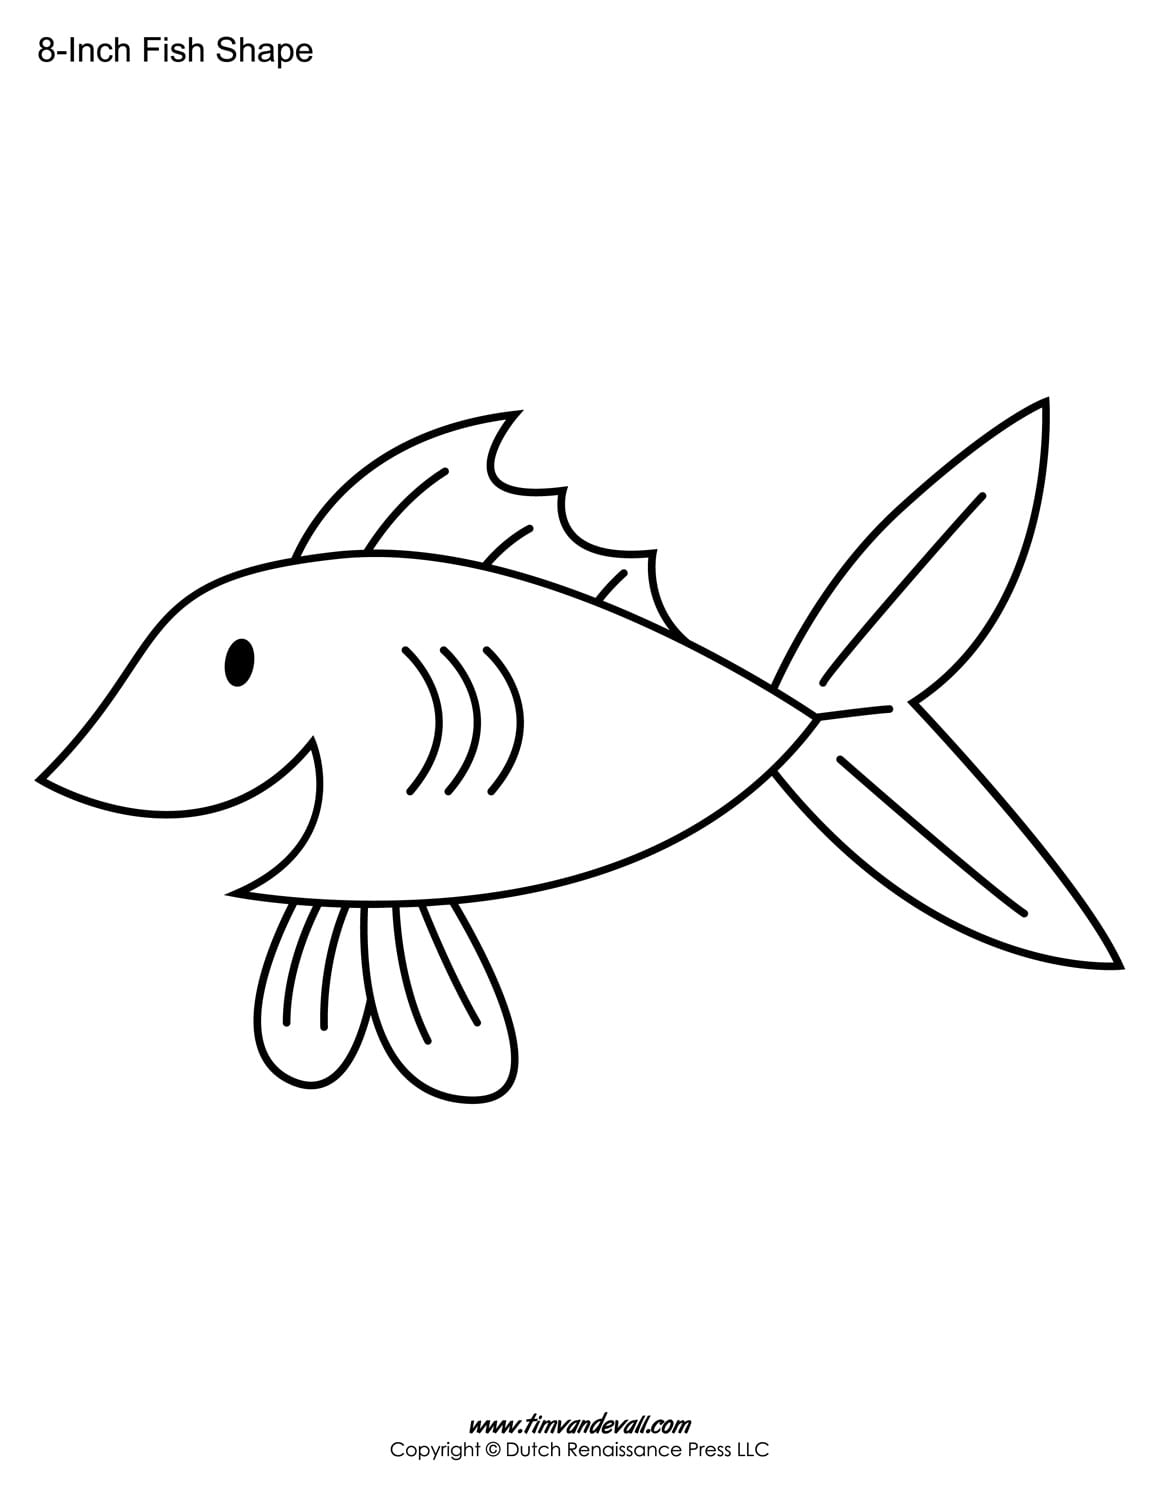 Launching Fish Outline Printable Templates For Kids Preschool